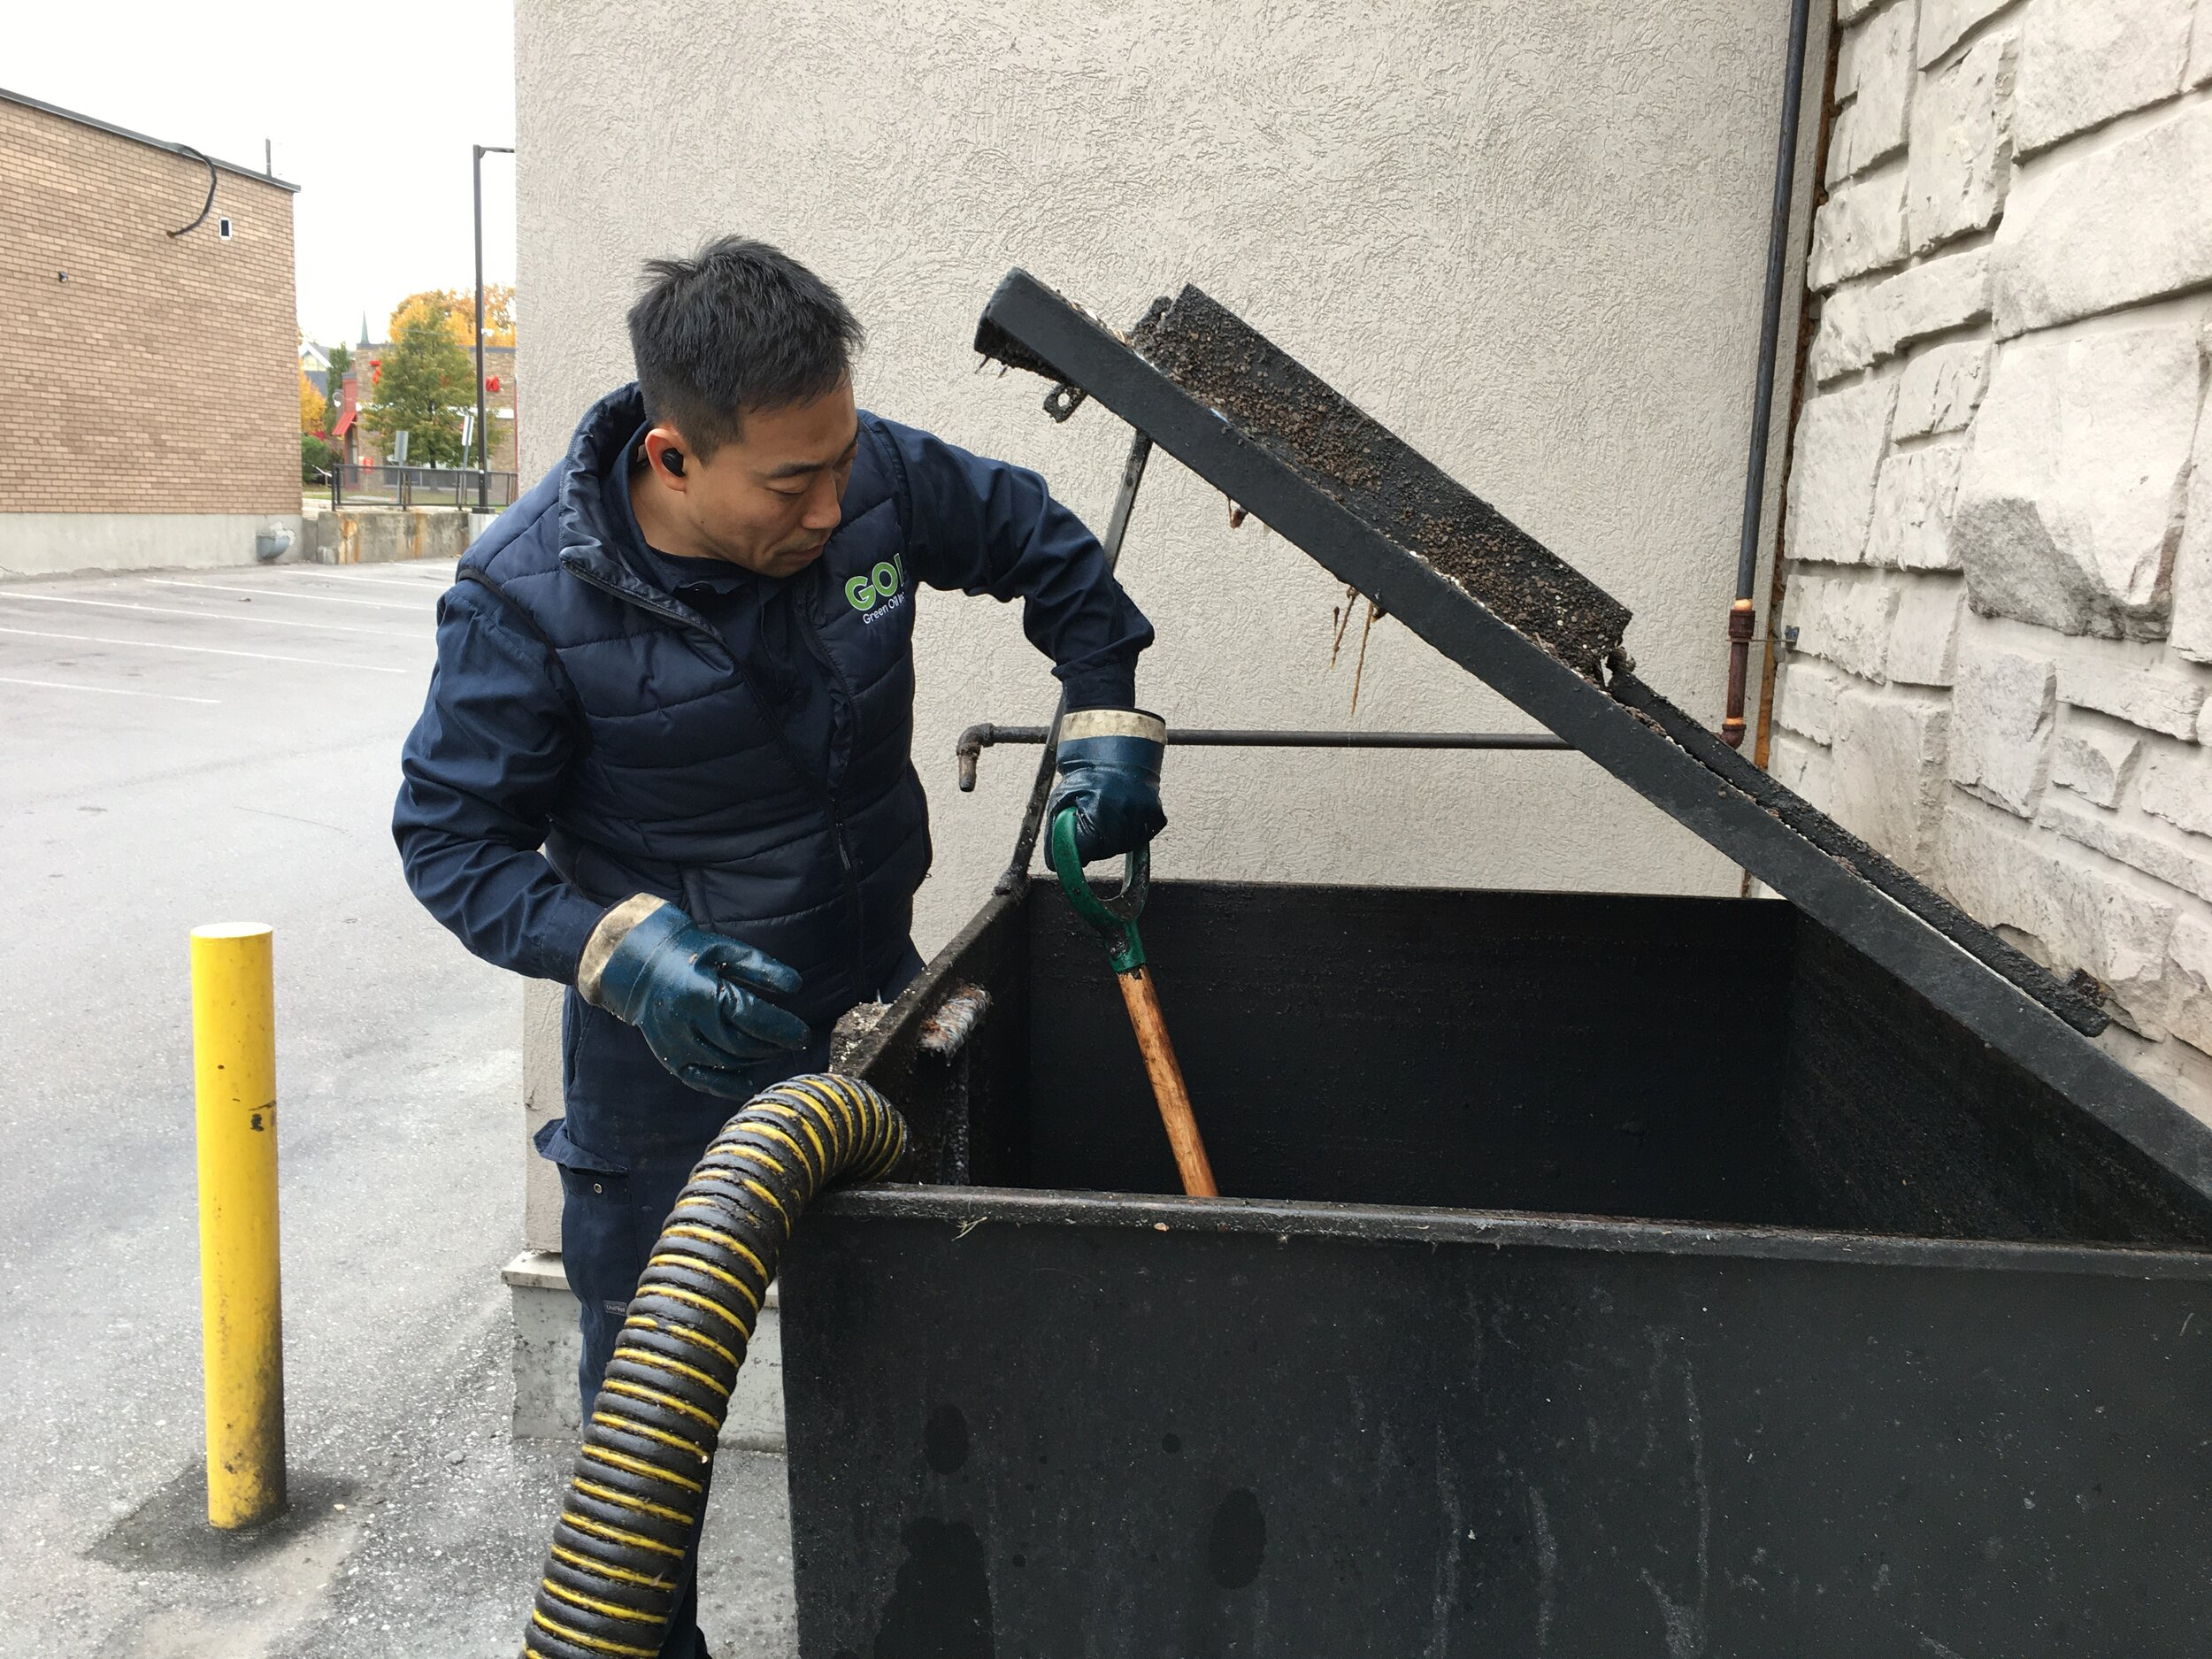 Sometimes our drivers will use a shovel to speed up the oil suction process and to clear the hardened oil clumps that usually sink to the bottom of the bins.